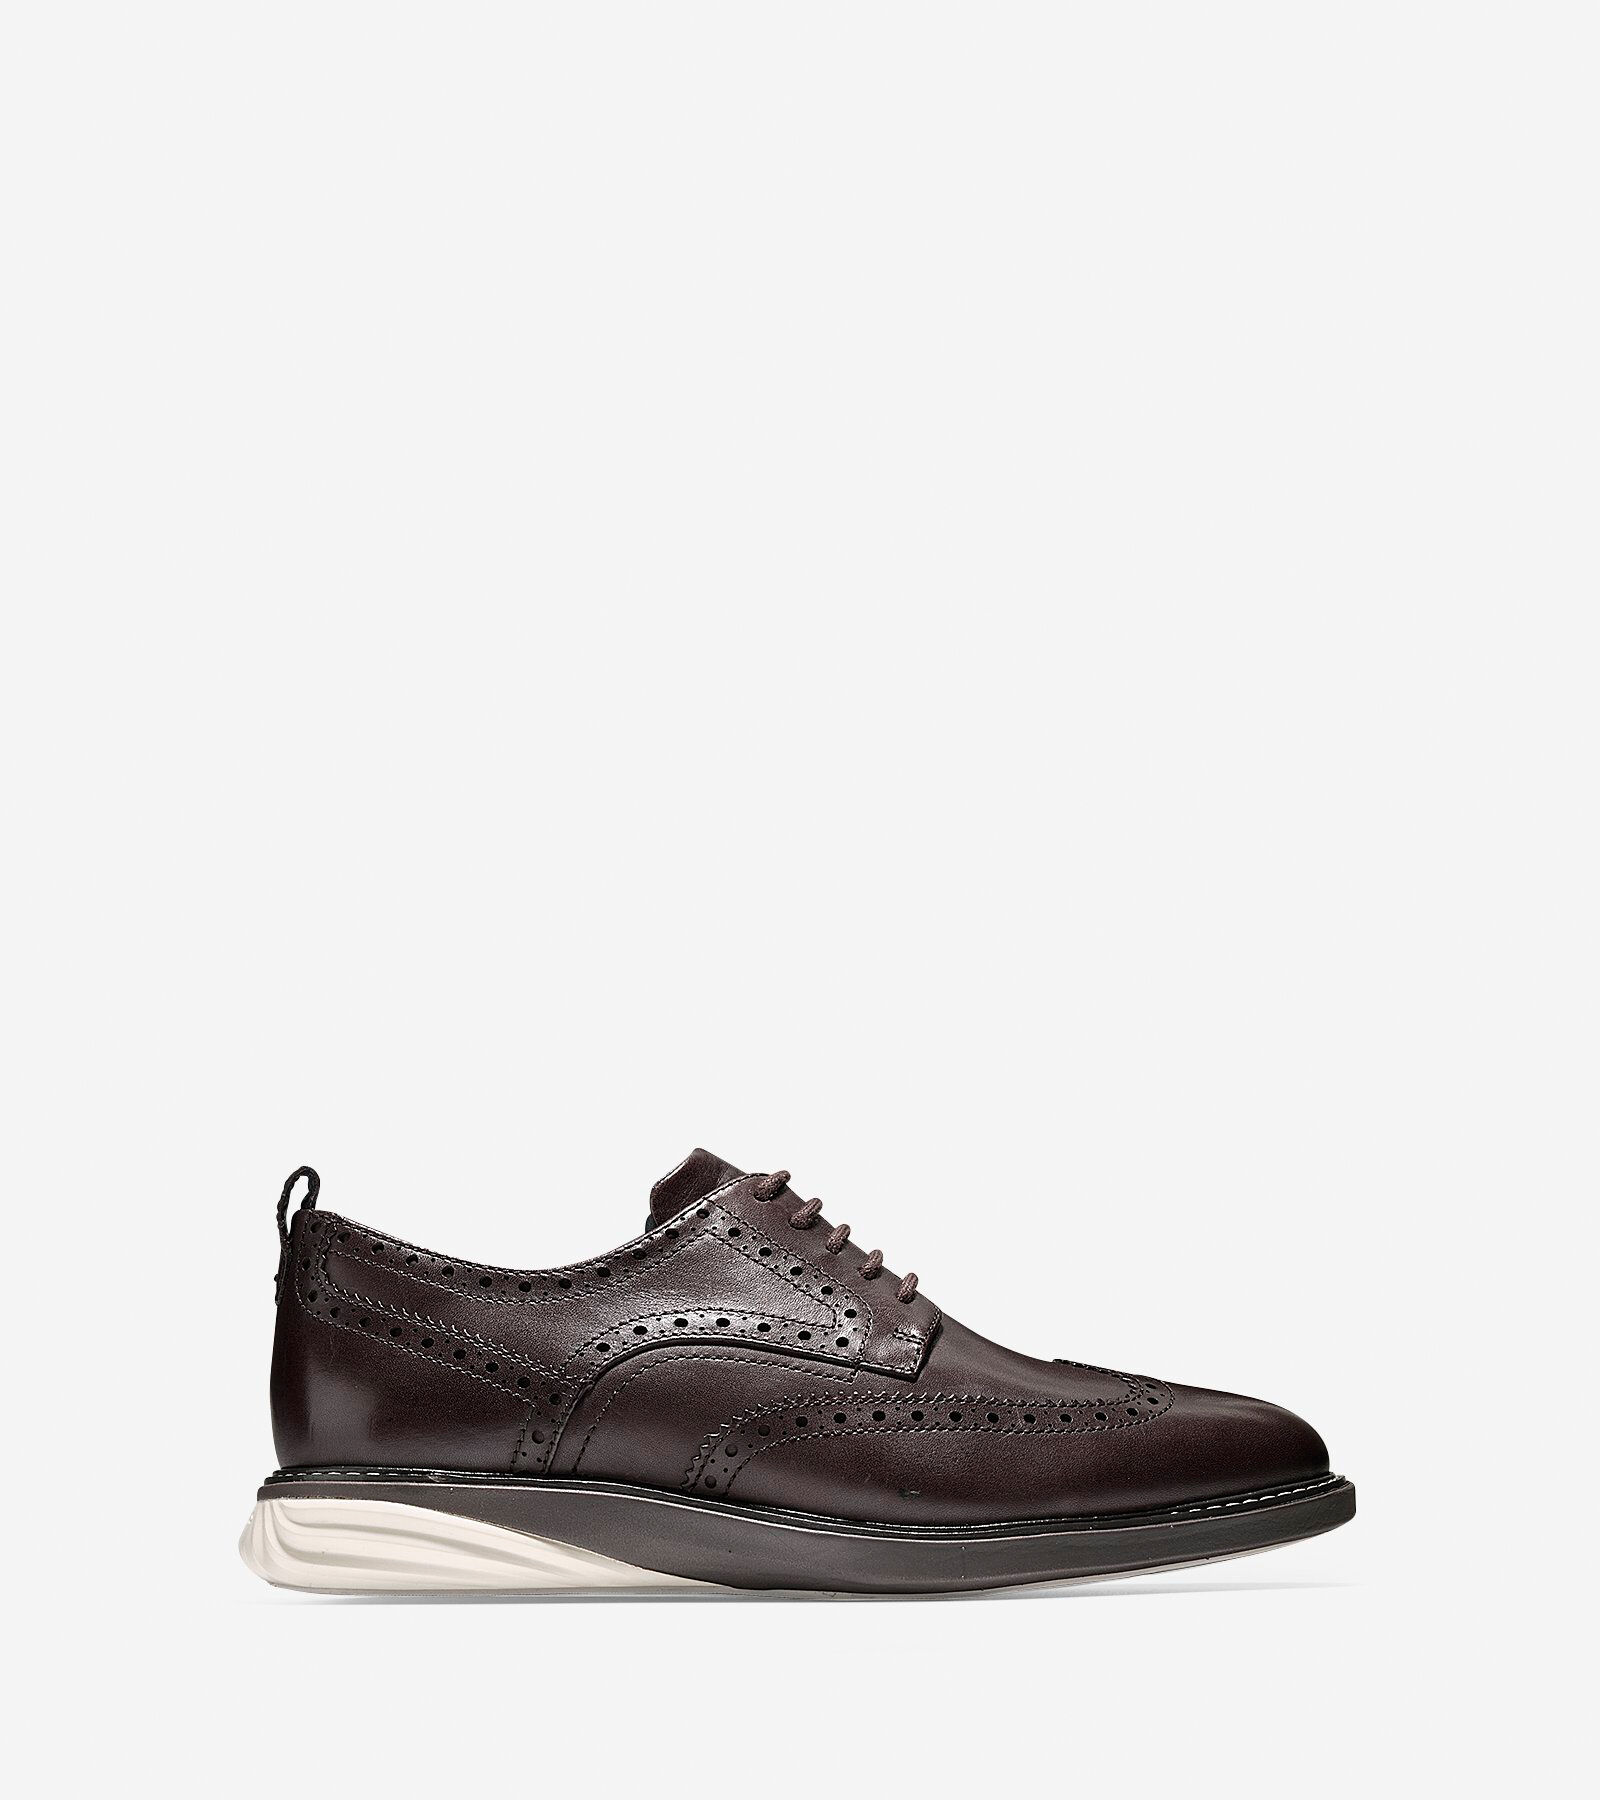 Mens Casual Shoes Haan Avery Patent Grand Os Ballerina Flats Black Cole Casual Shoes BLACK Hot Sale Online